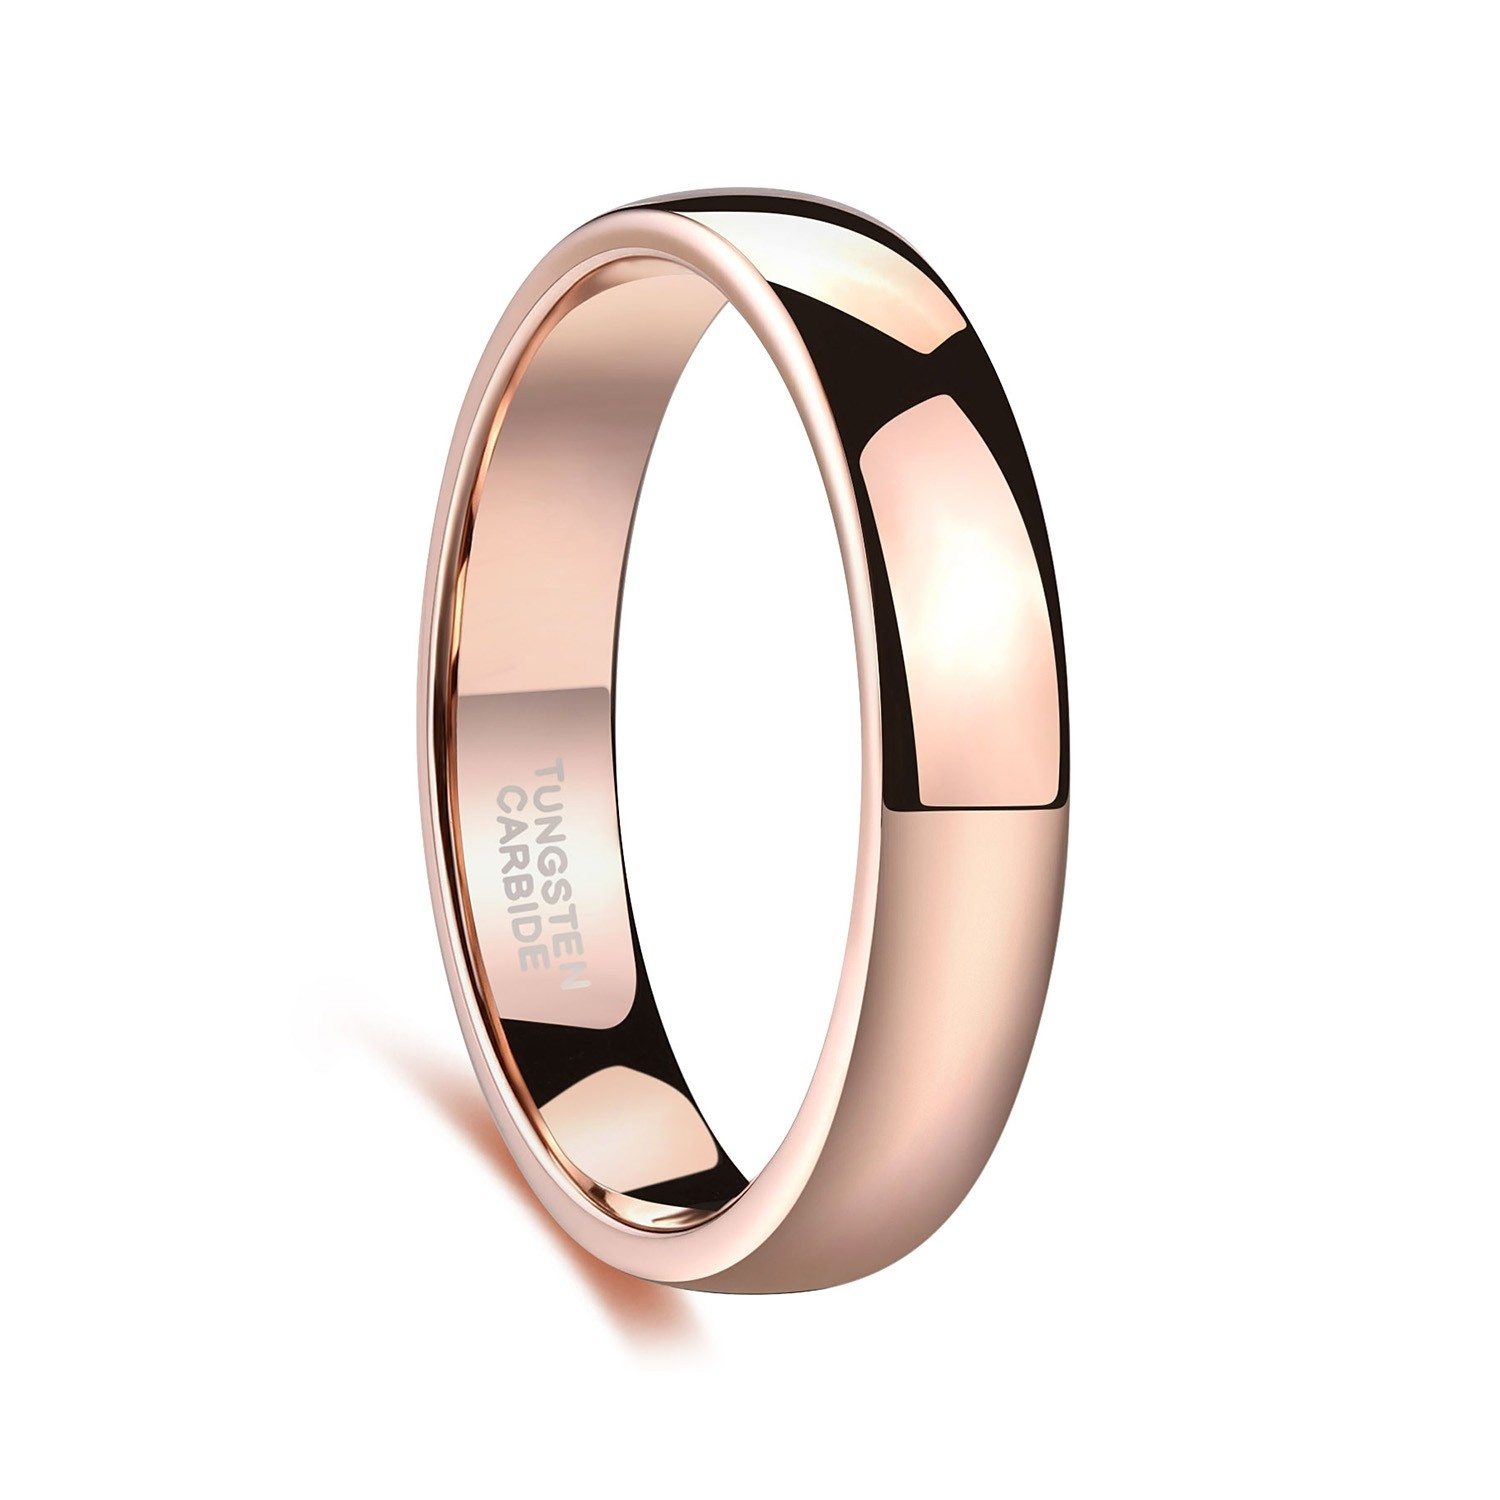 It is just a photo of Rose Gold Tungsten Mens Womens Wedding Band Plain High Polished 42mm 42mm